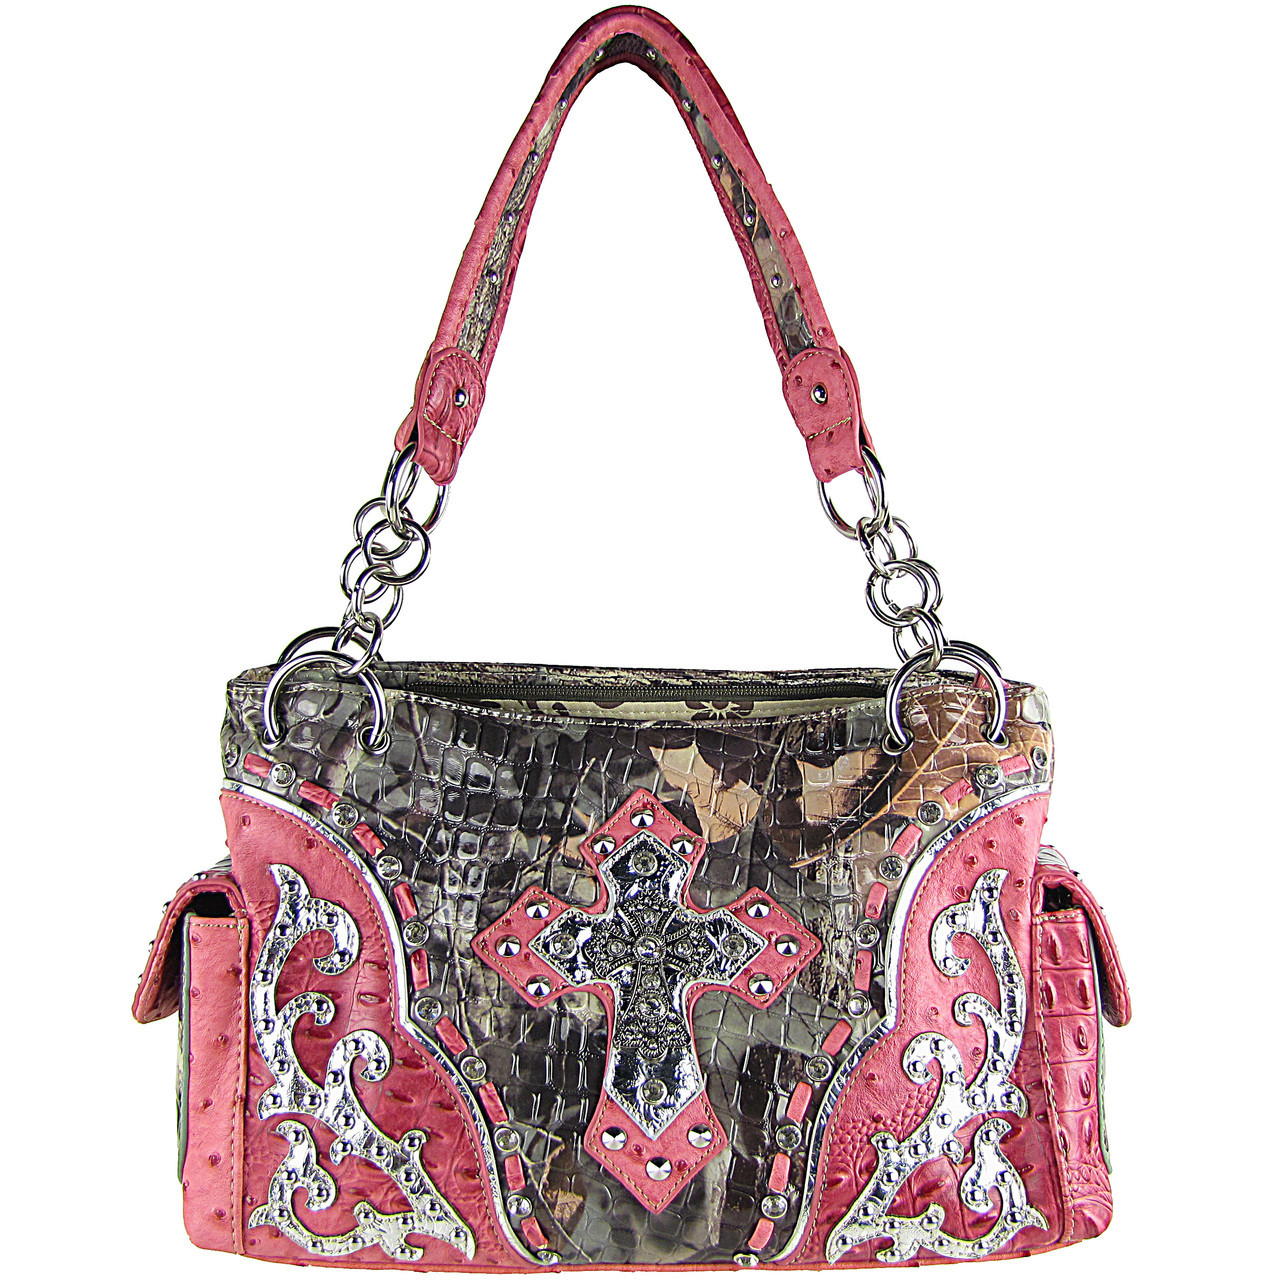 HOT PINK WESTERN STUDDED RHINESTONE MOSSY CAMO METALLIC CROSS LOOK SHOULDER HANDBAG HB1-HC402-10HPK